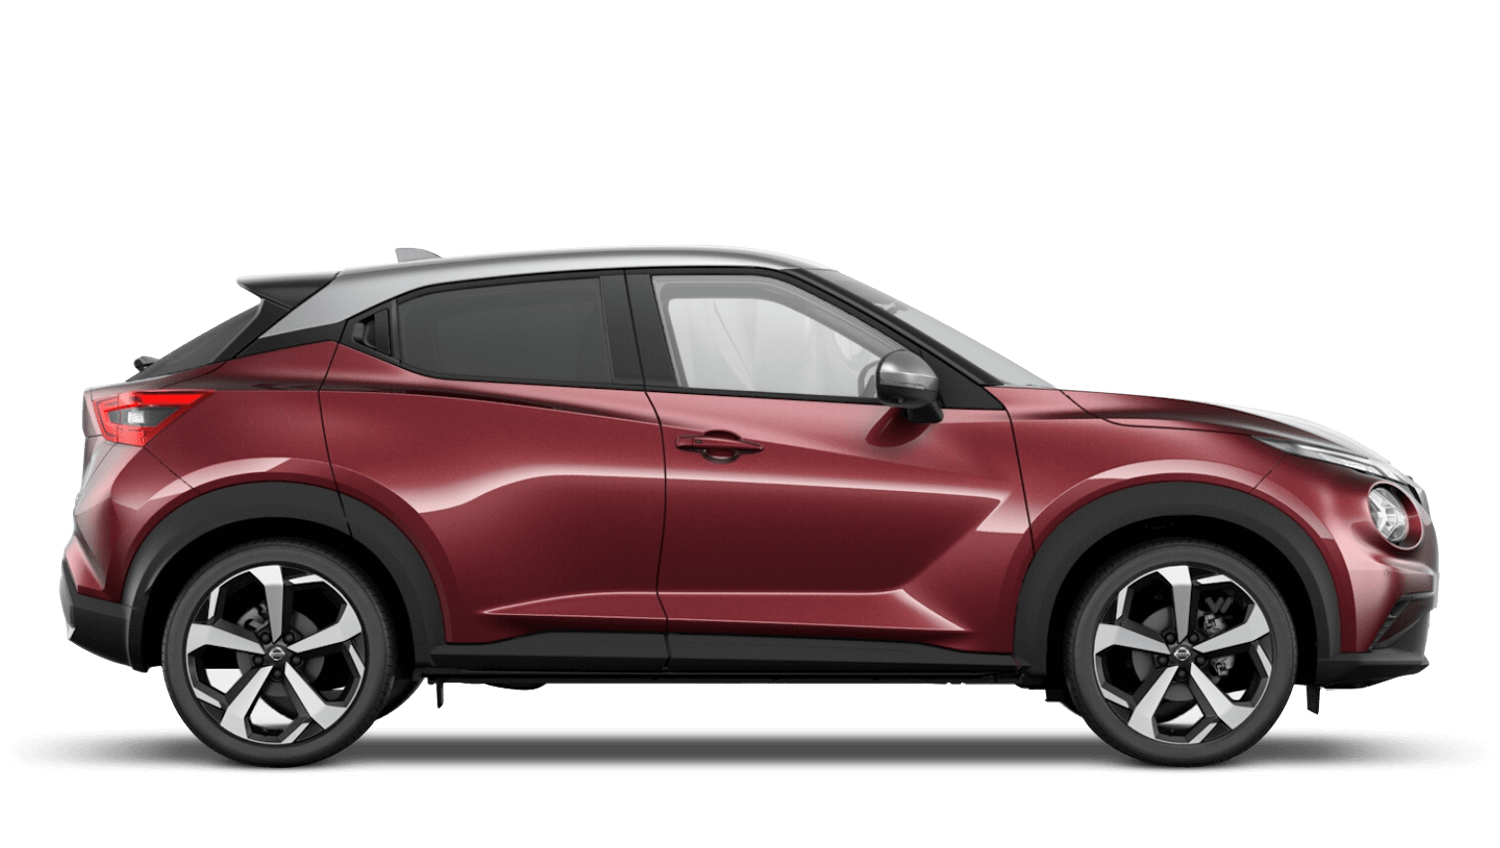 Burgundy with Blade Silver Roof Next Generation Nissan Juke